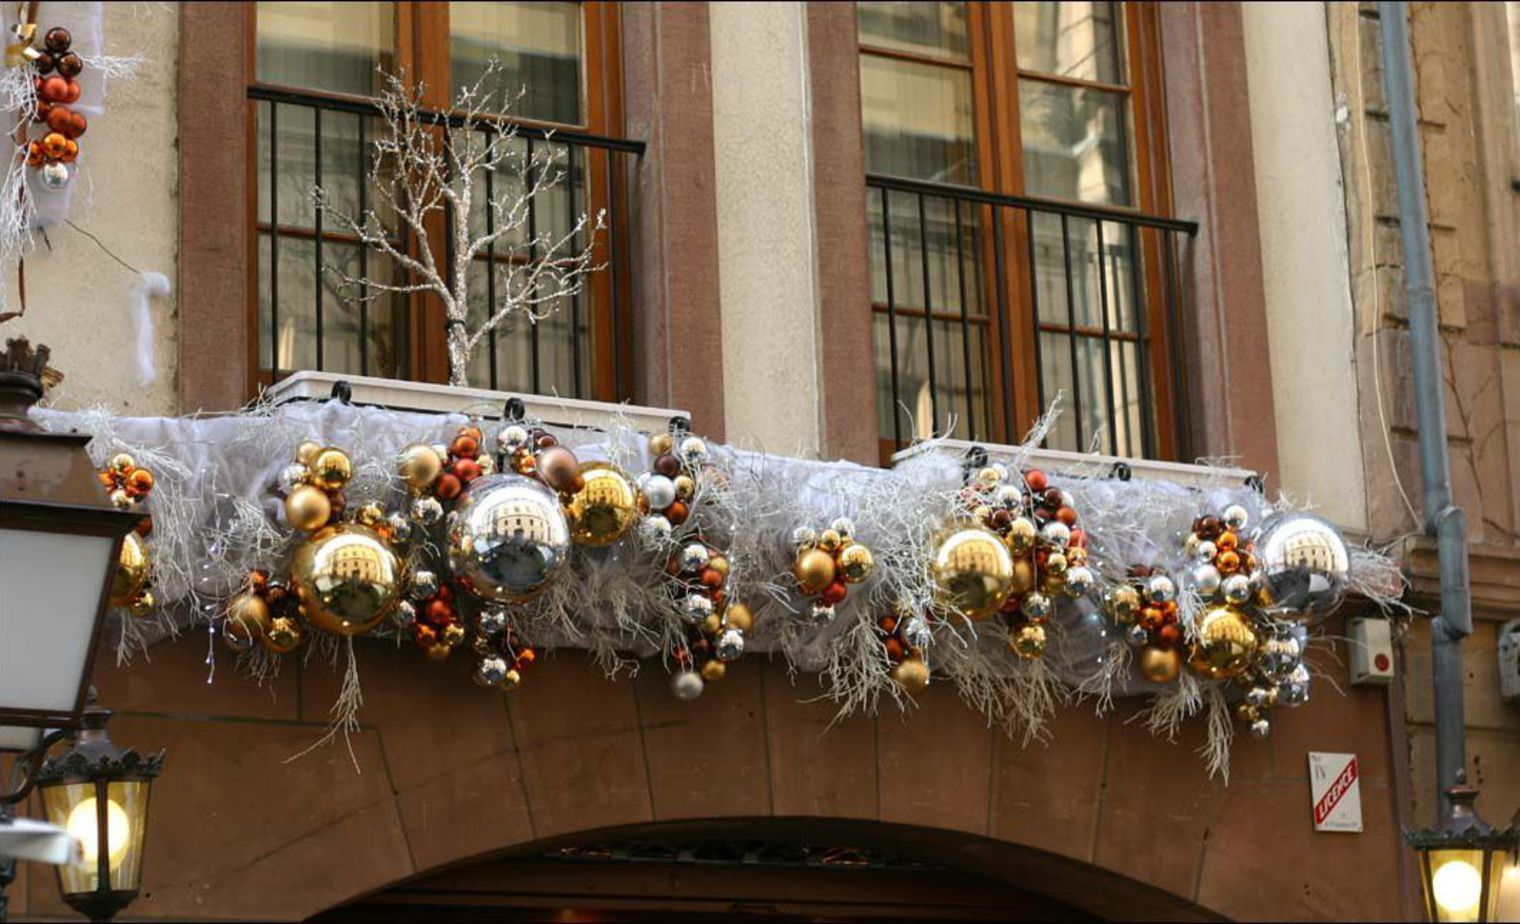 D coration noel exterieur balcon exemples d 39 am nagements for Idee de decoration exterieur pour noel